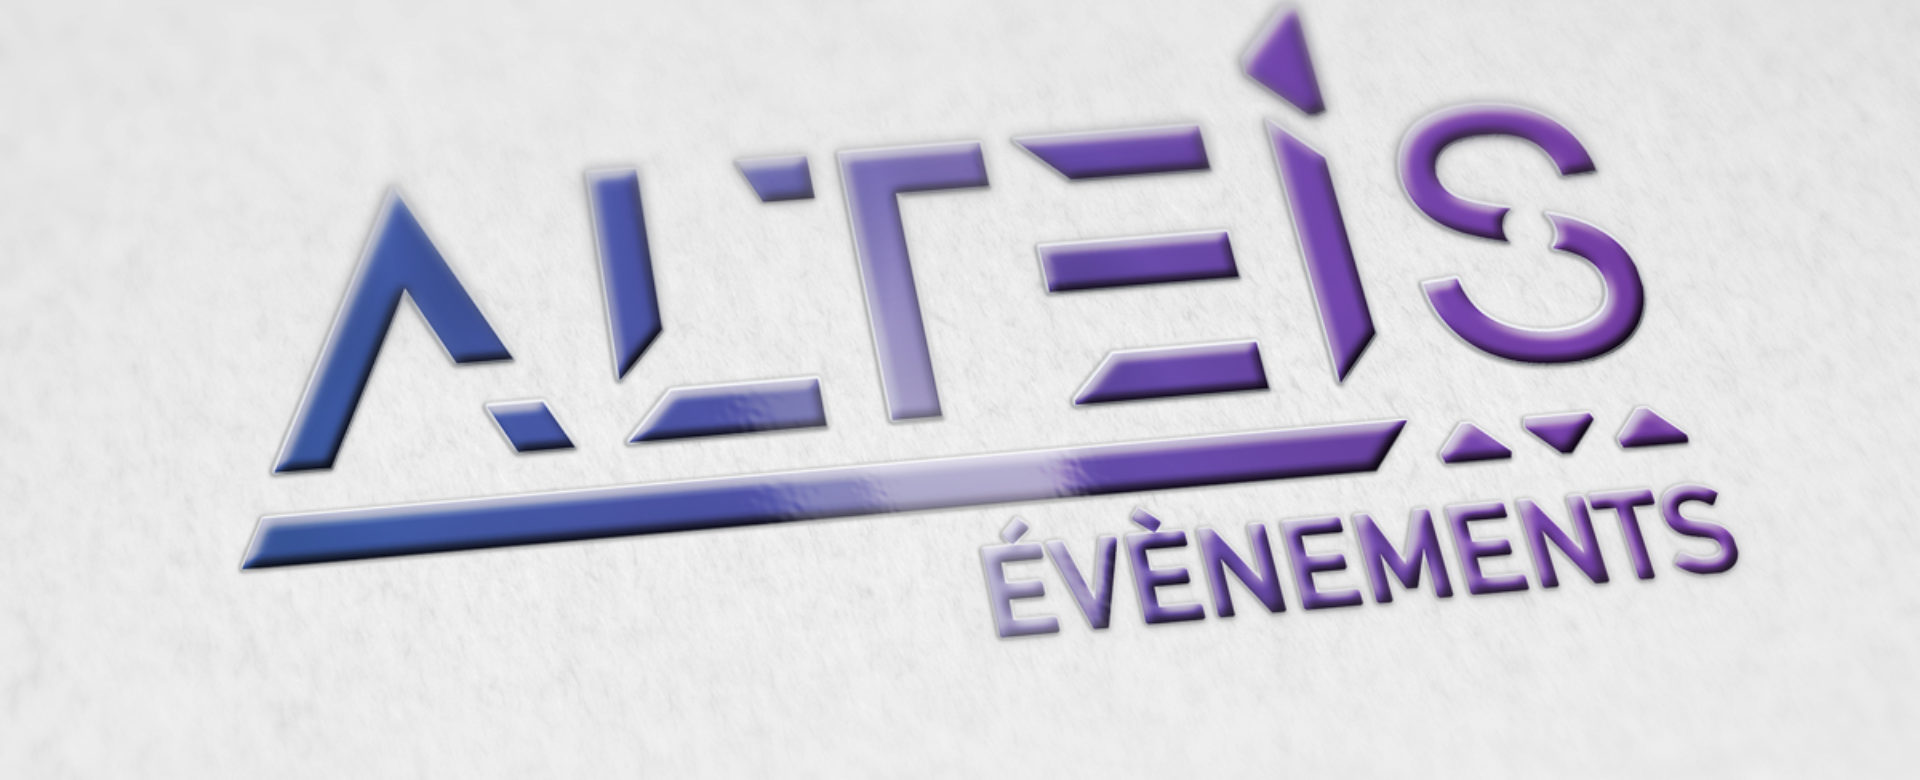 alteis-evenement-mockup-colors